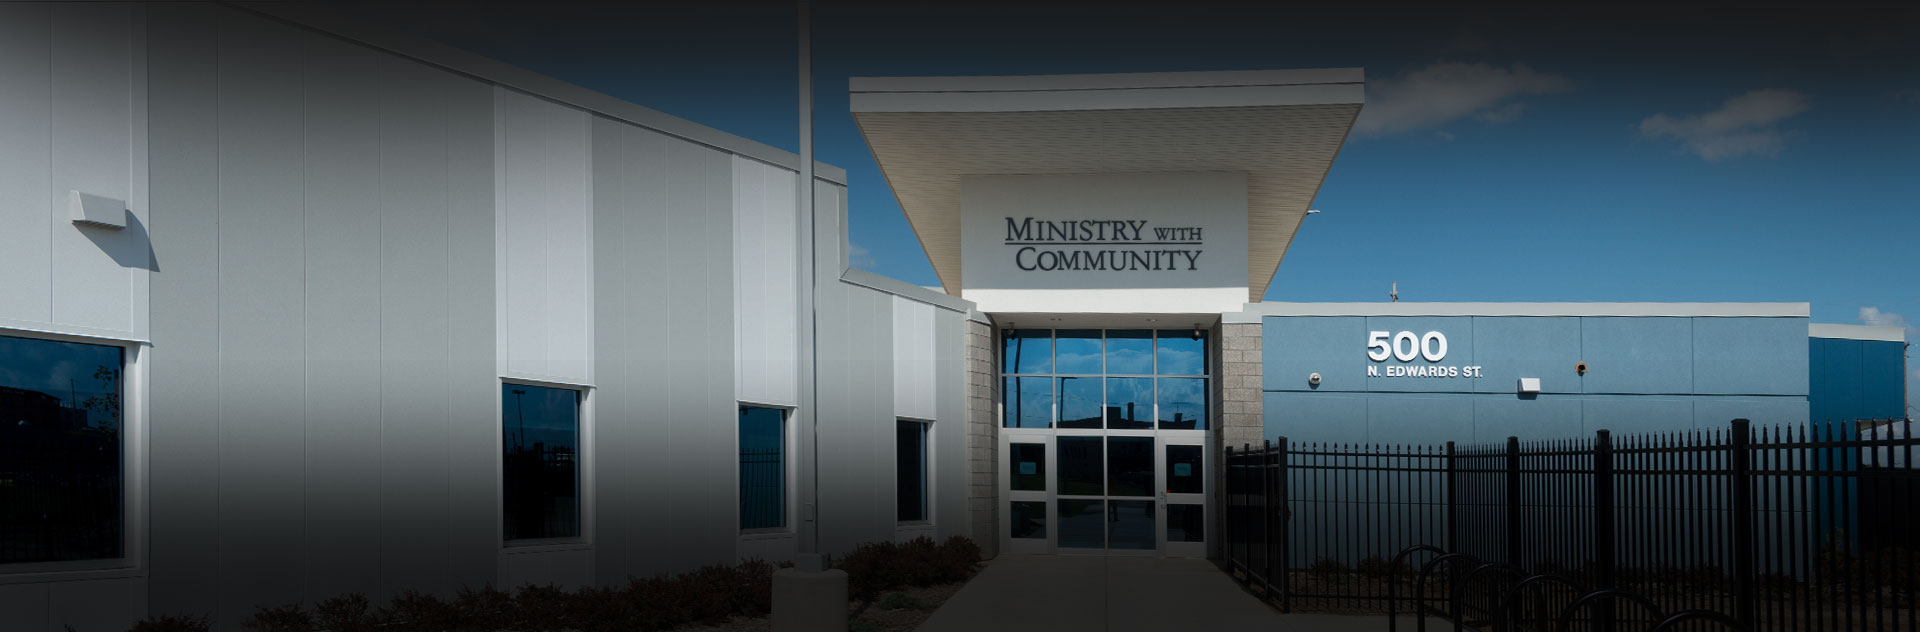 Ministry-with-Community